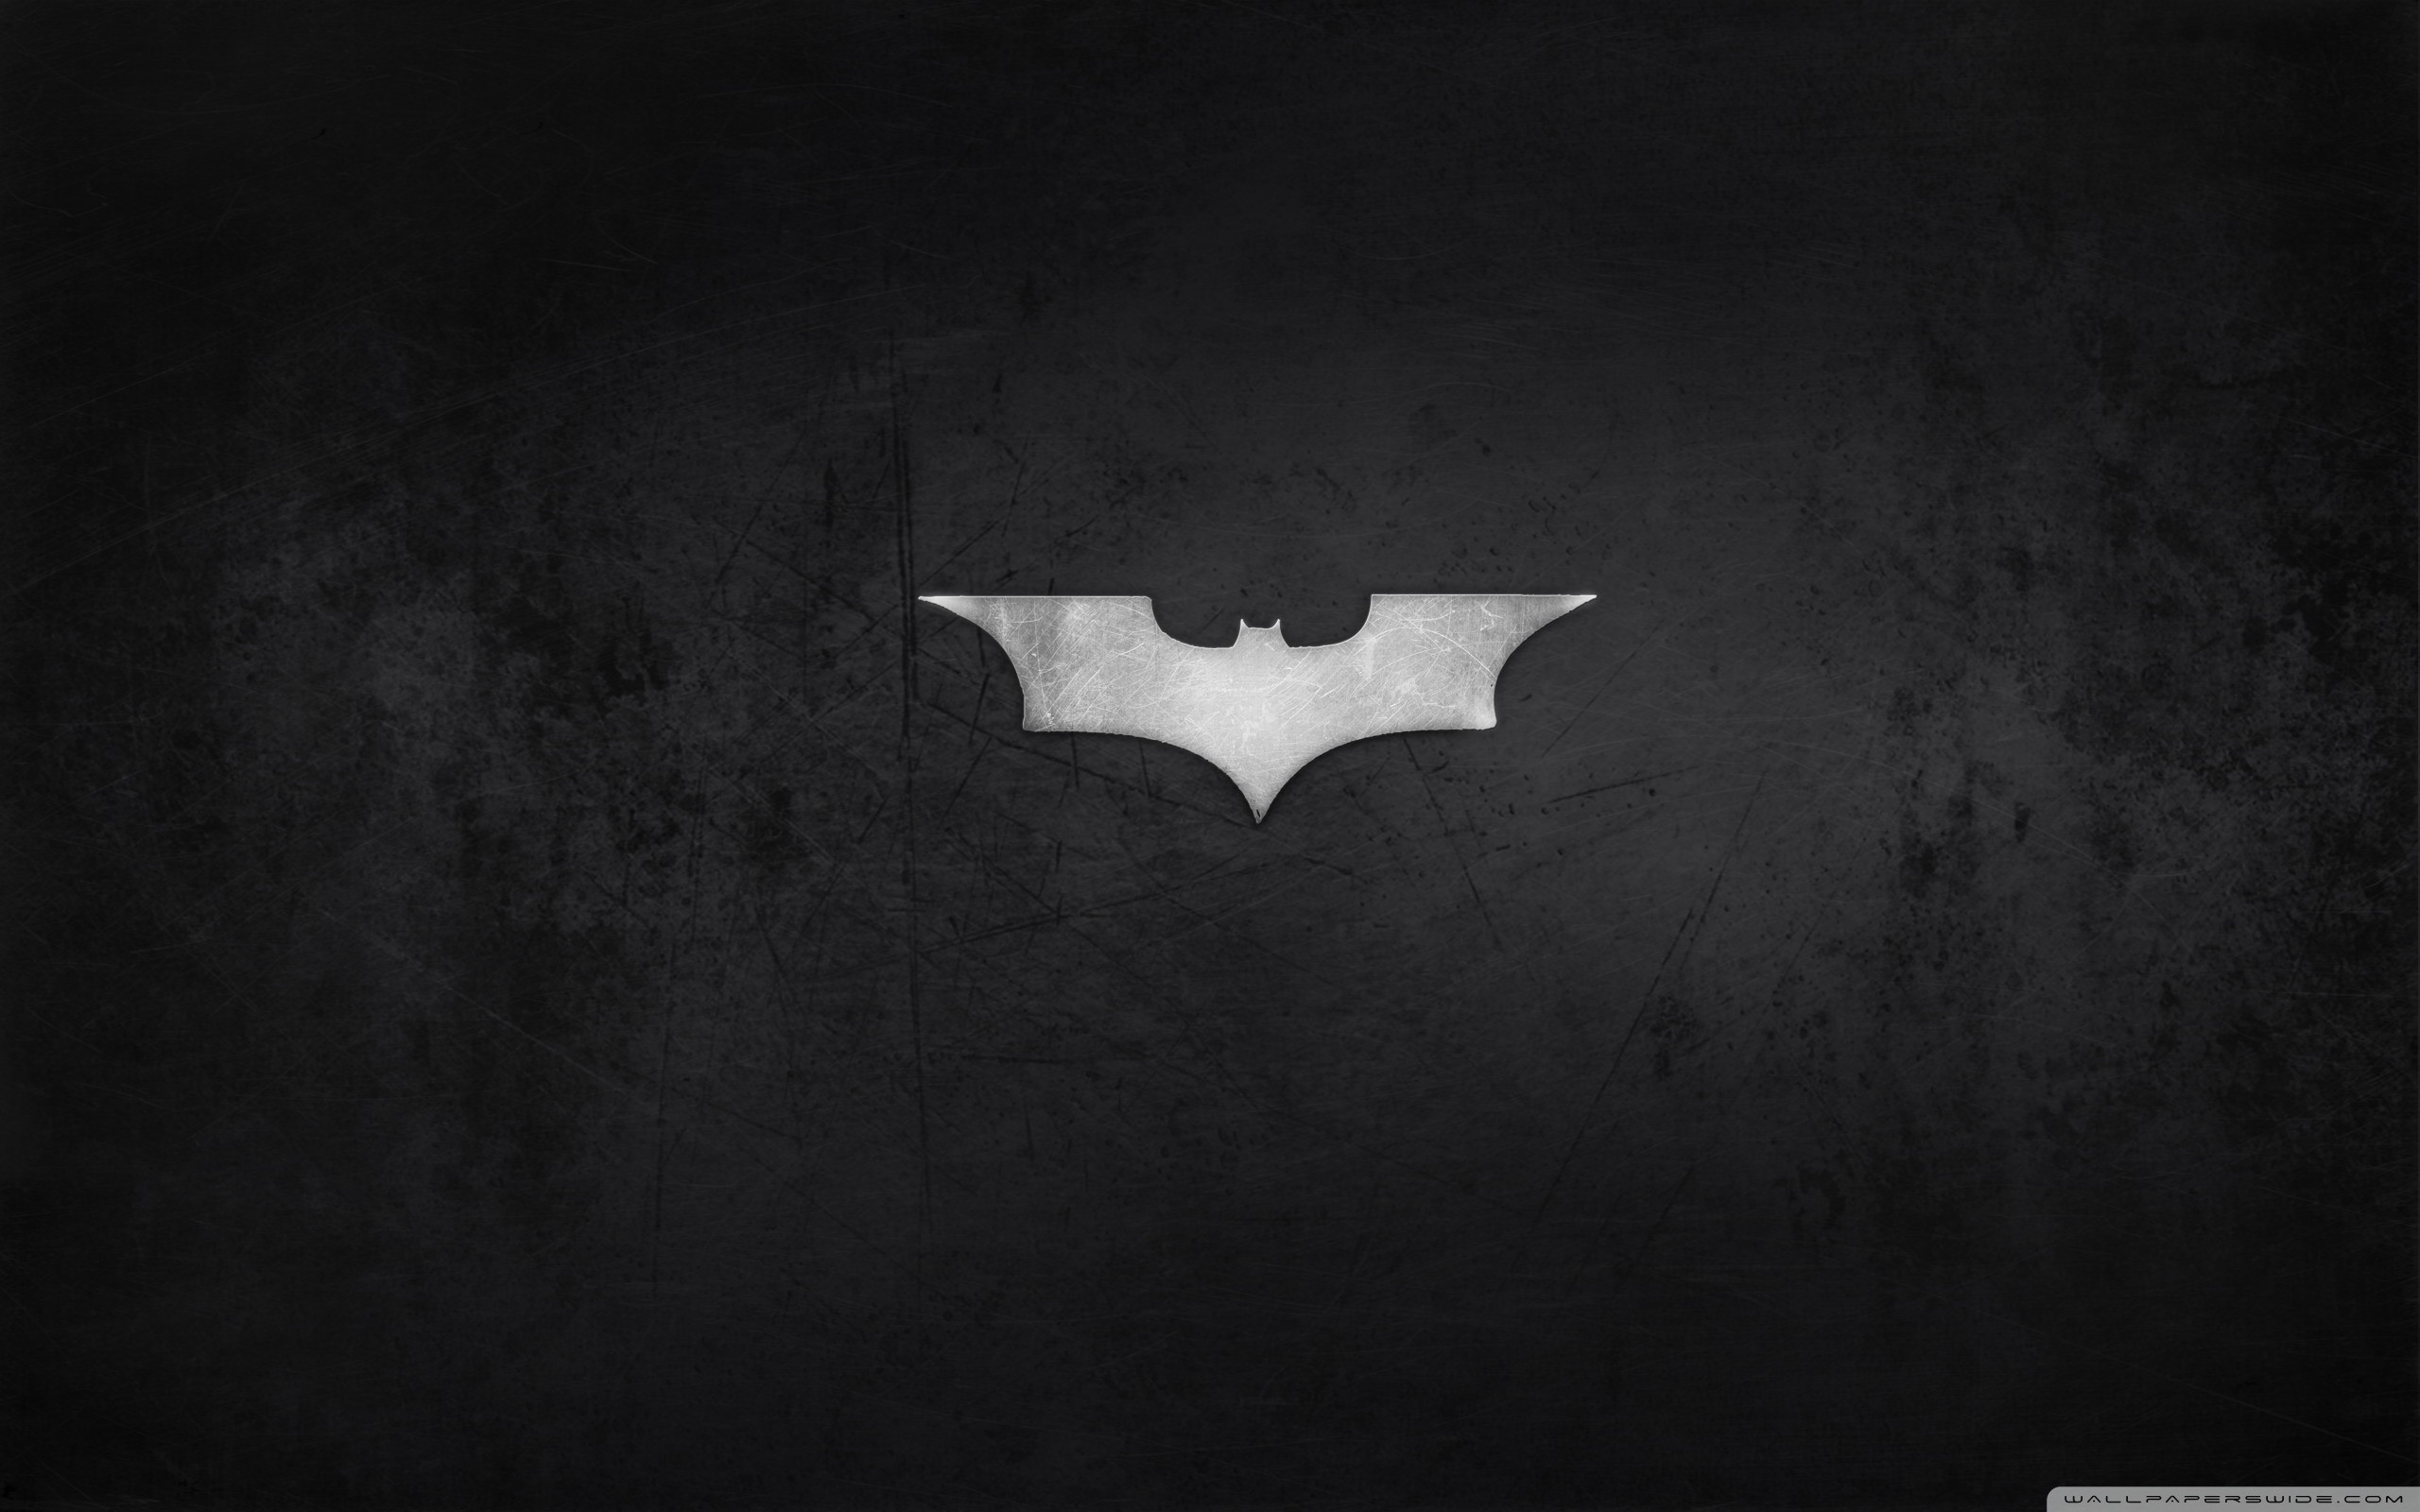 Batman Hd Wallpapers 1080p Backgrounds Photos Images Pictures Yl Computing